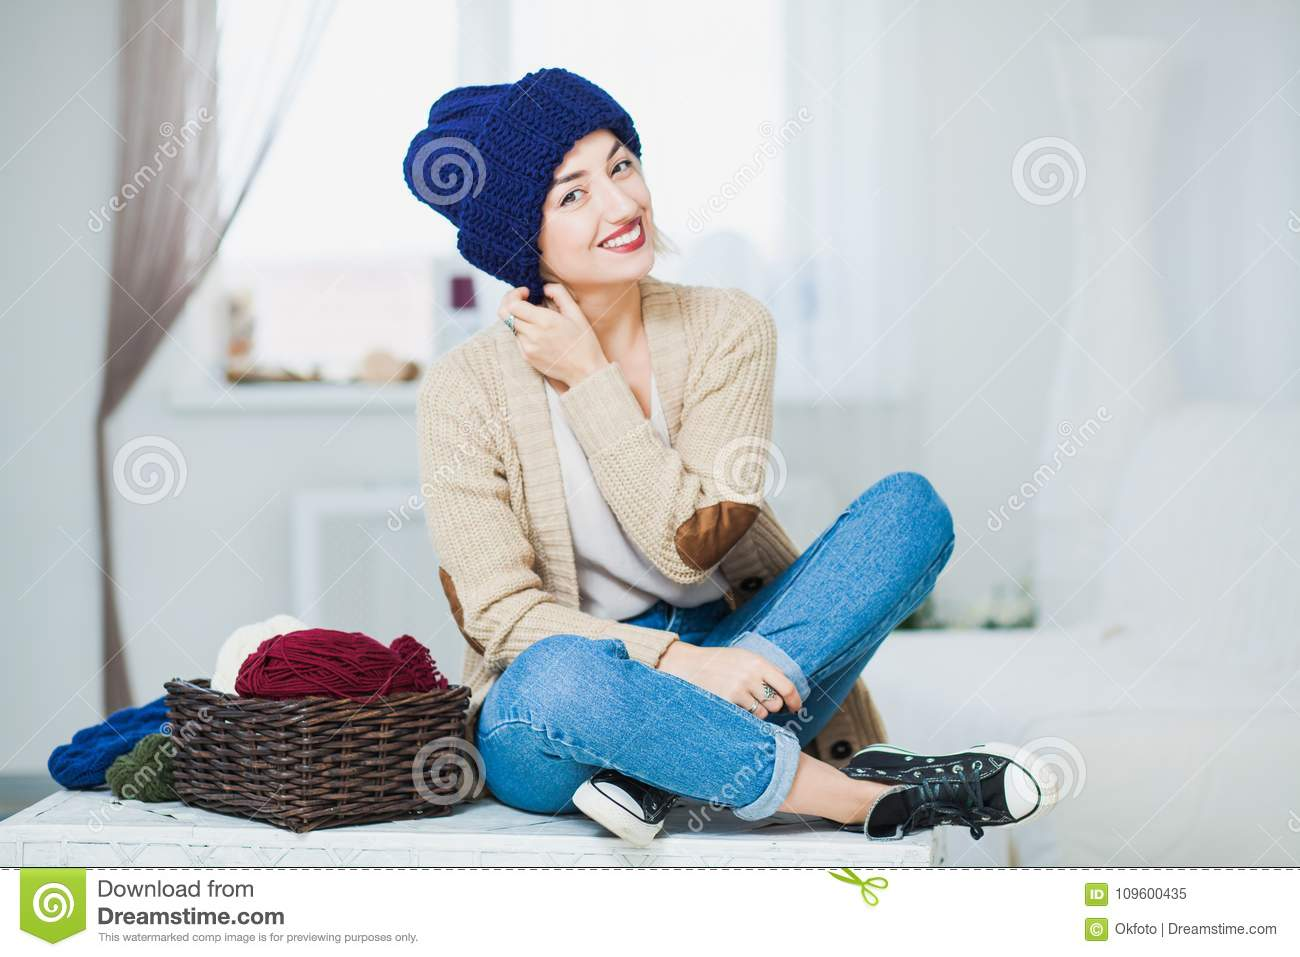 d35472edd1e Beautiful woman in big white knitted hat indoors sit on chest with basket  yarn. Knitting at home